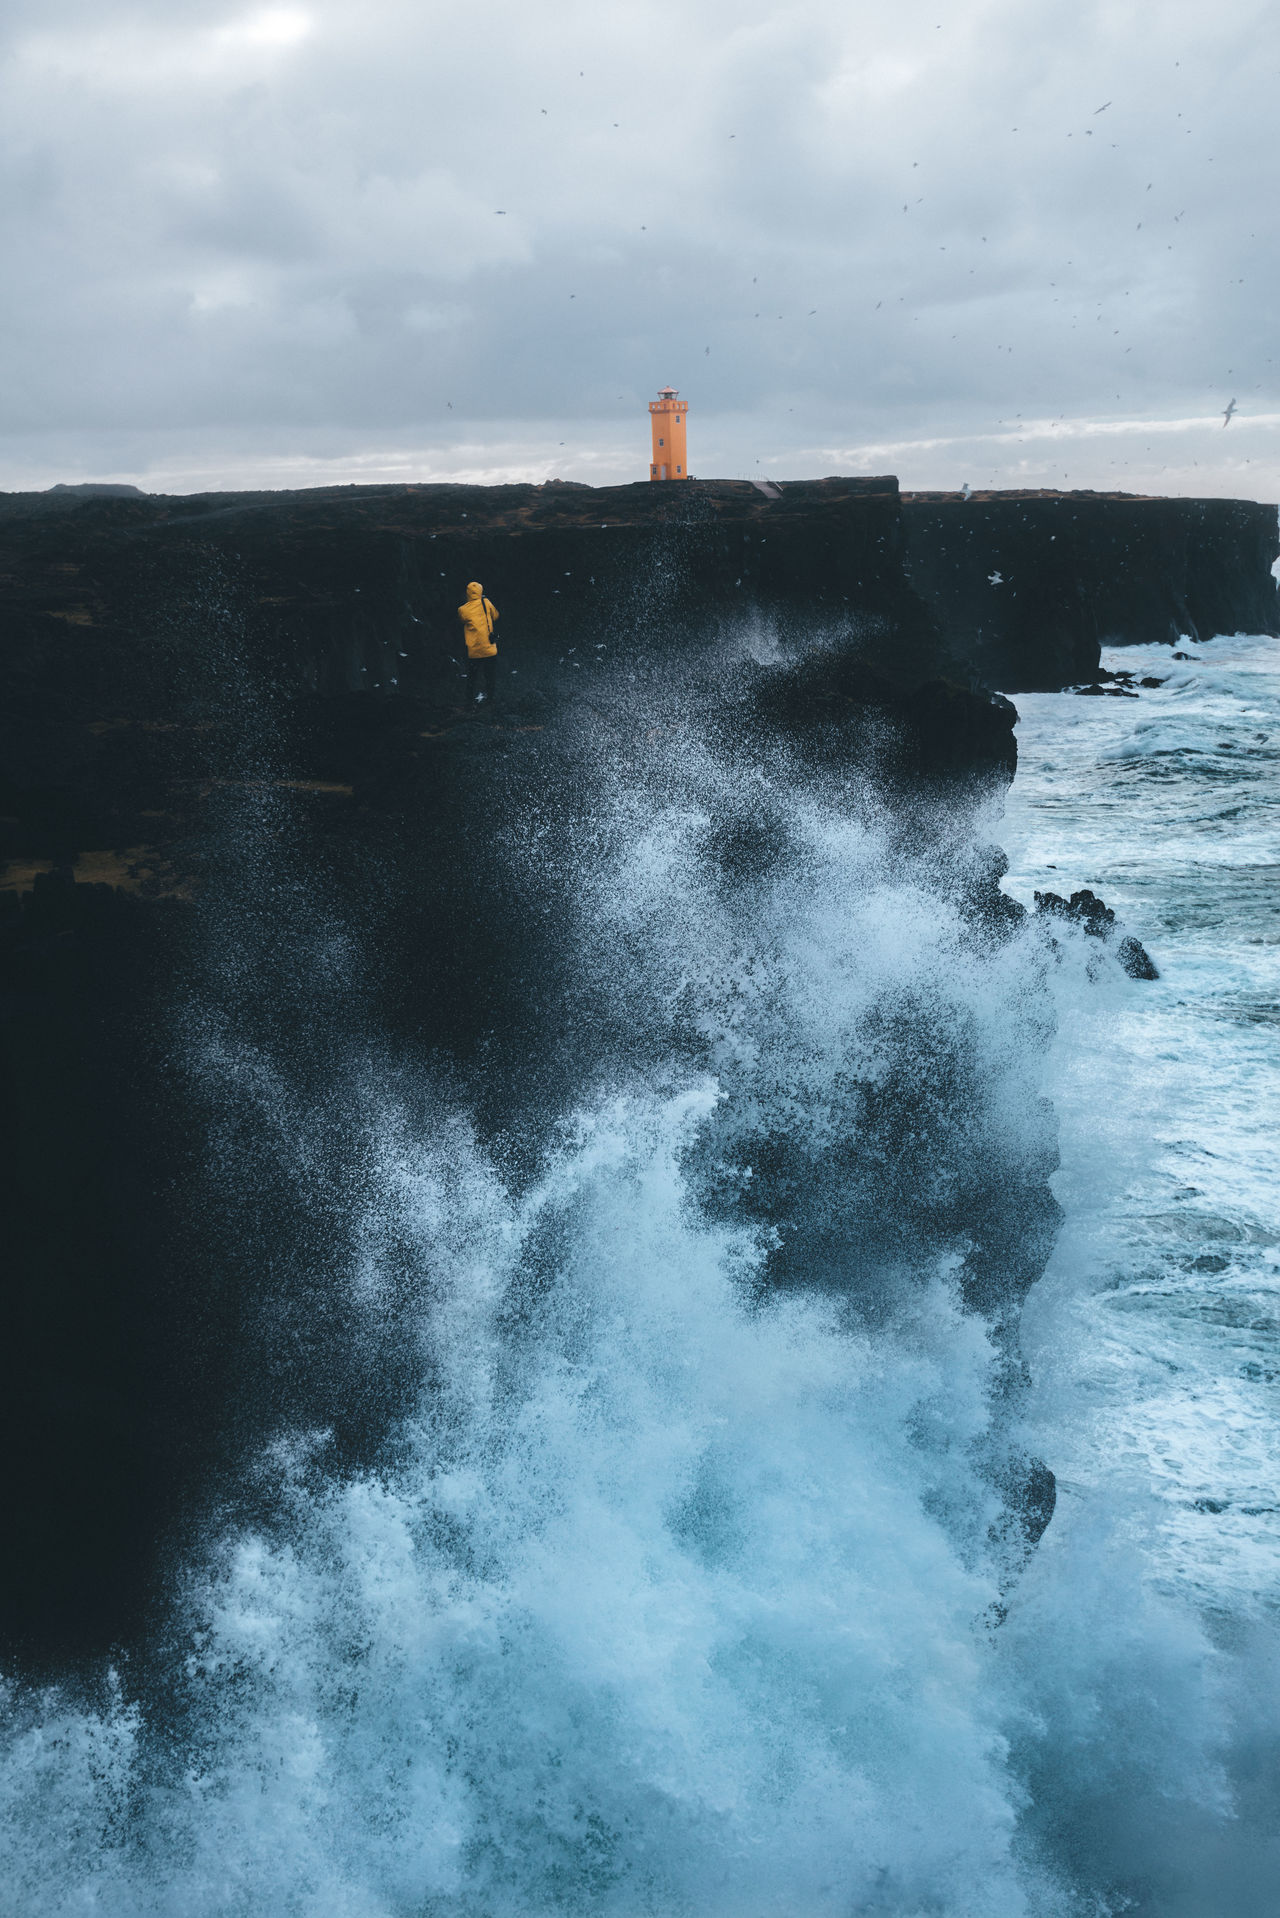 Iceland coast landscape with rough sea Beauty In Nature Breaking Crash Day Force Hitting Motion Nature No People Outdoors Power In Nature Sea Sky Water Wave Fresh On Market 2017